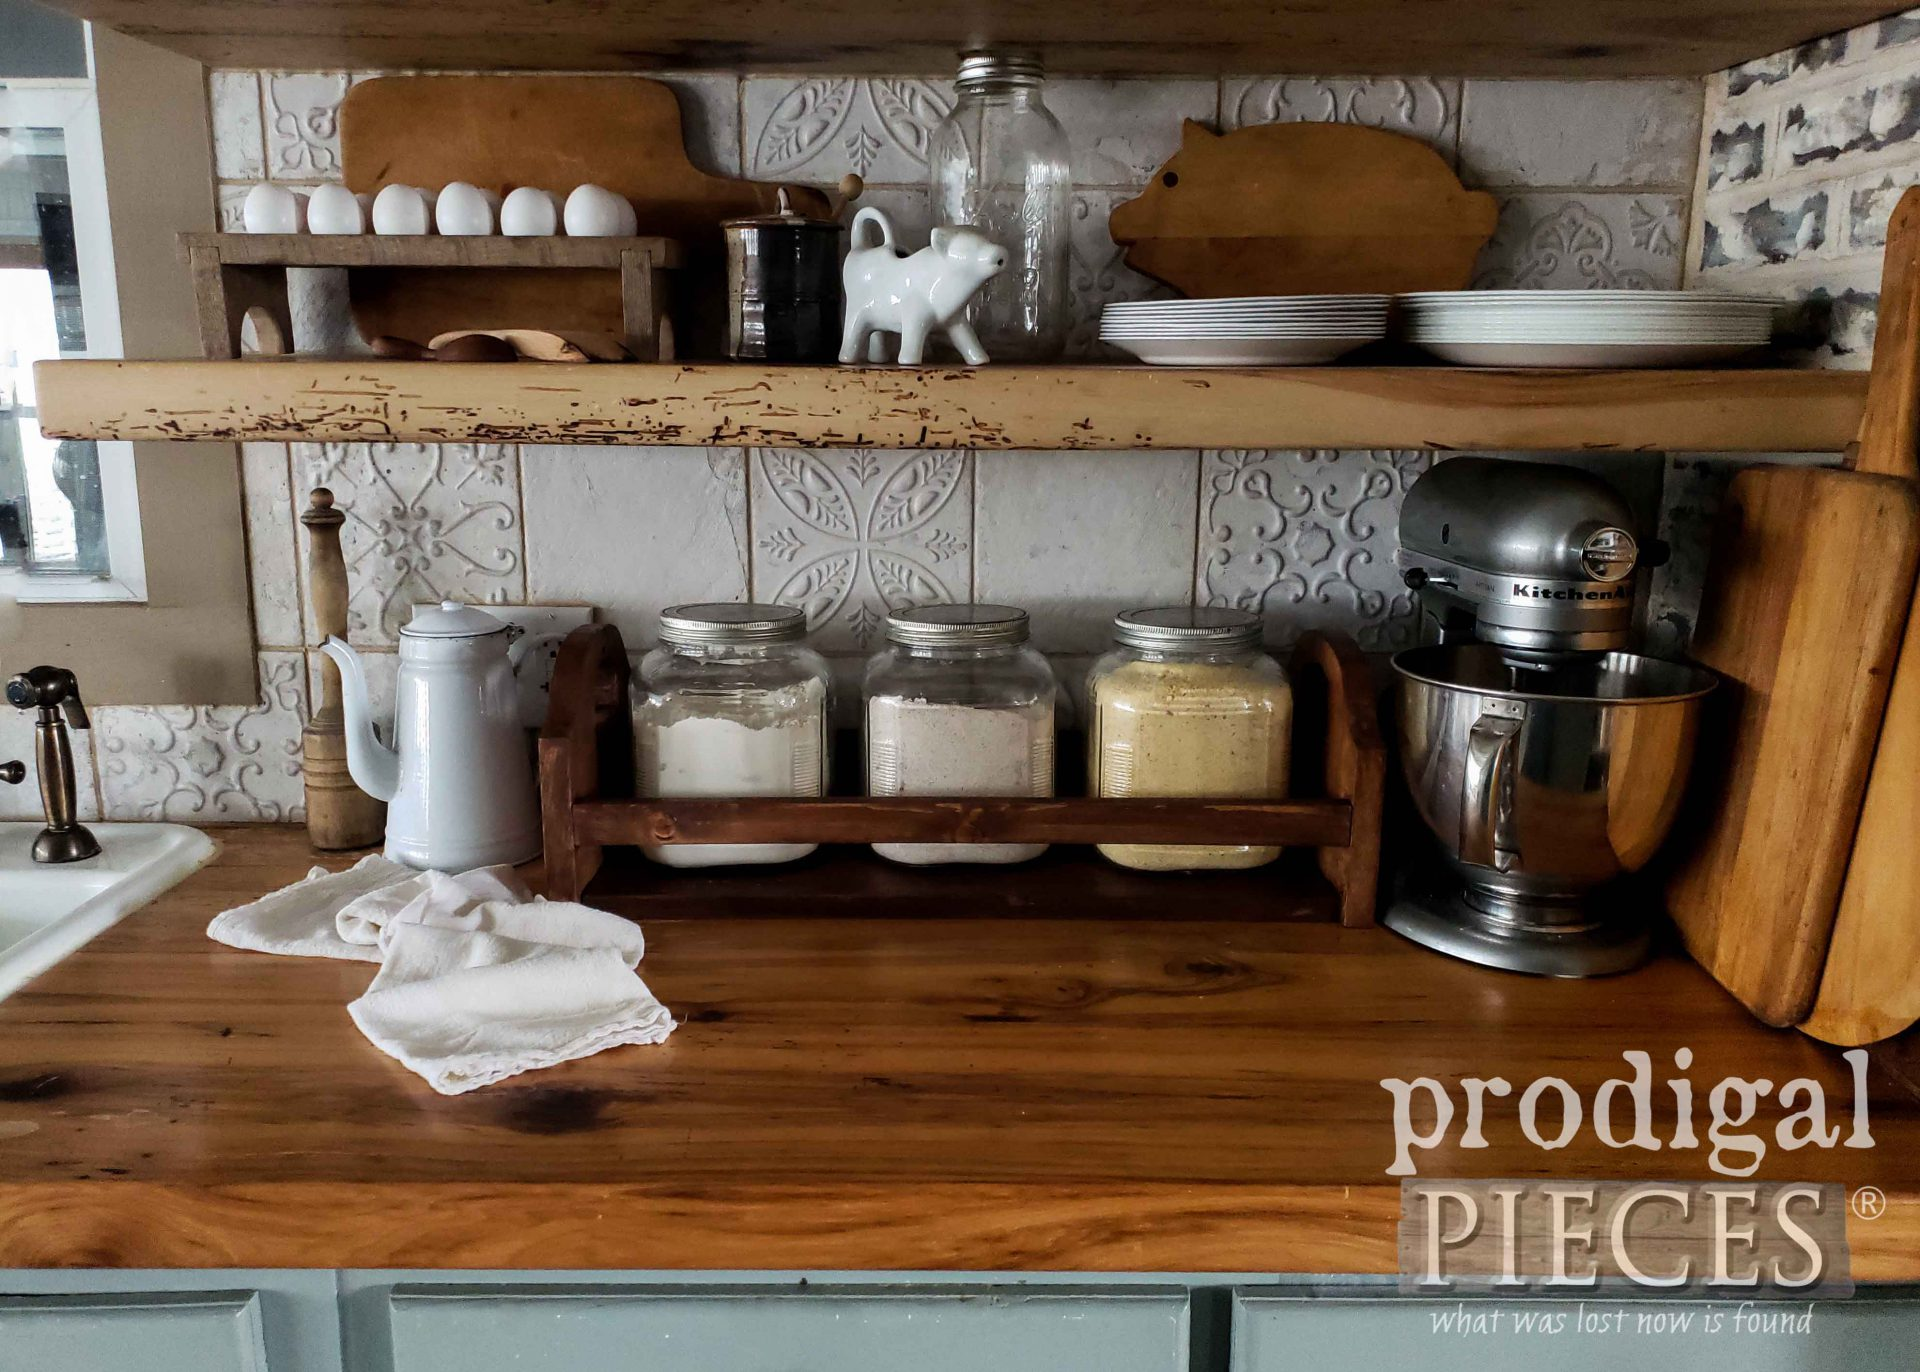 Farmhouse Kitchen Storage Crate Handmade by Larissa of Prodigal Pieces from Upcycled Materials | prodigalpieces.com #prodigalpieces.com #prodigalpieces #farmhouse #kitchen #storage #diy #home #homdecor